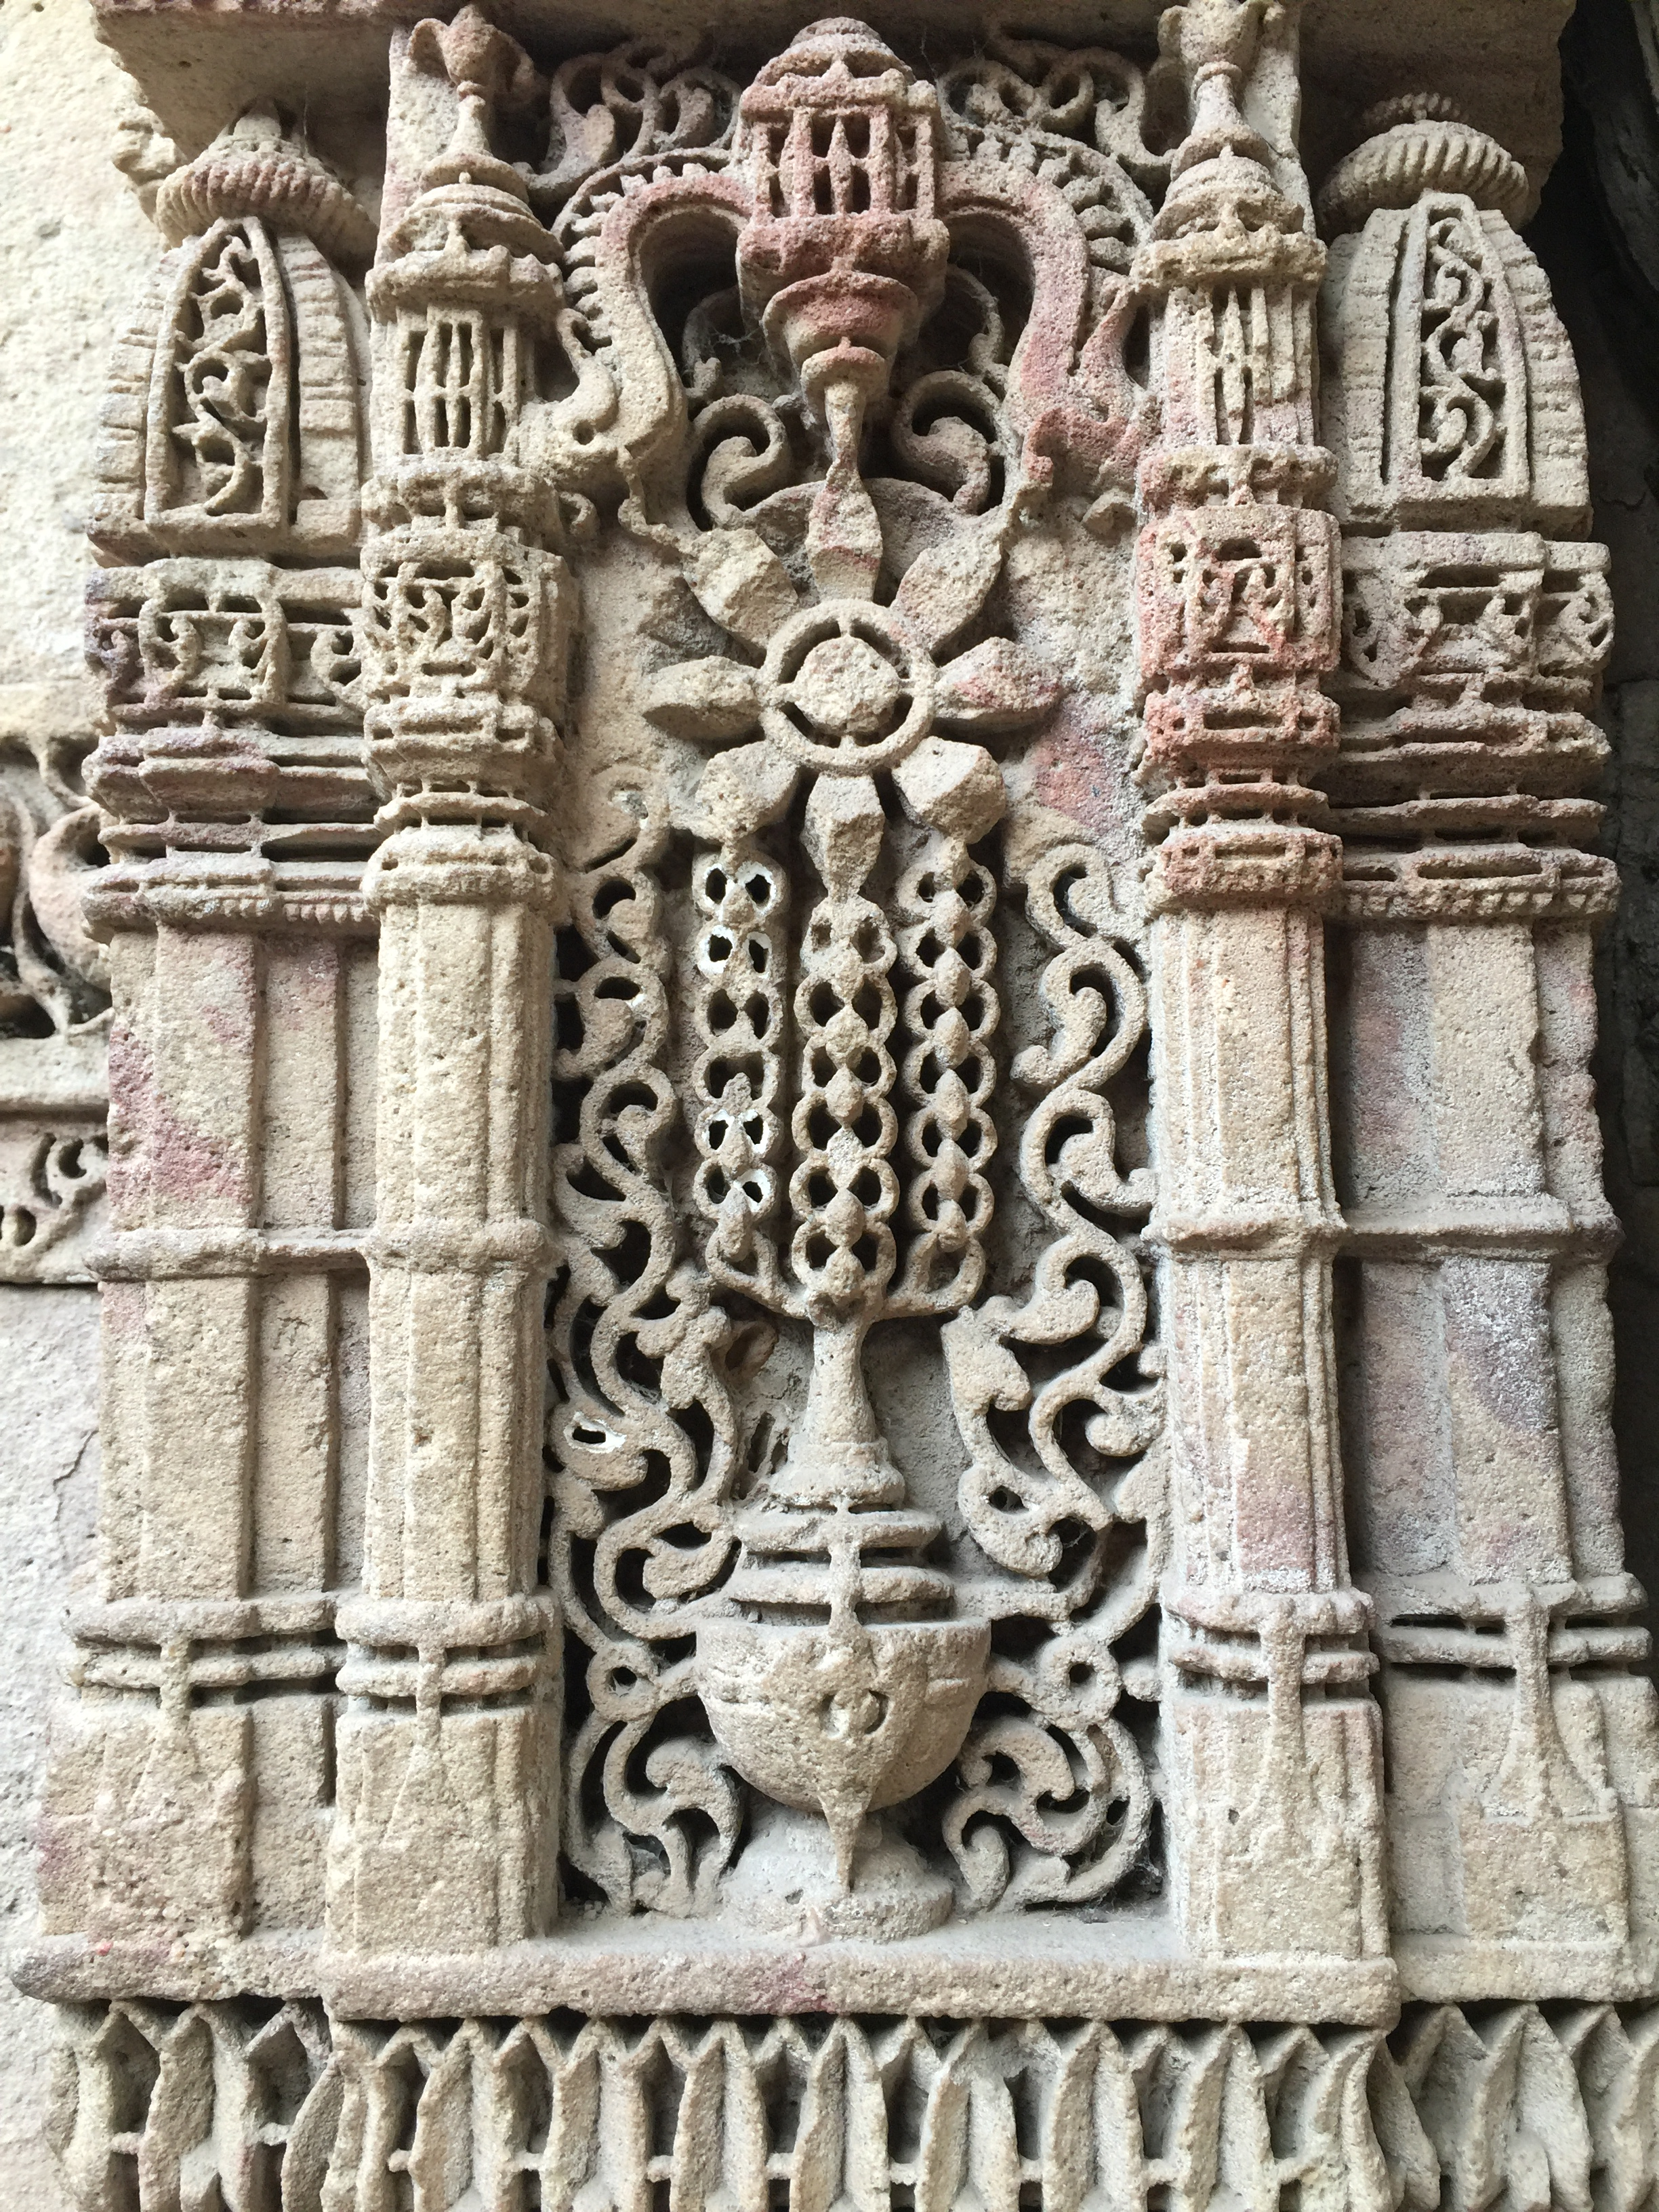 adalaj - designs in a pillar